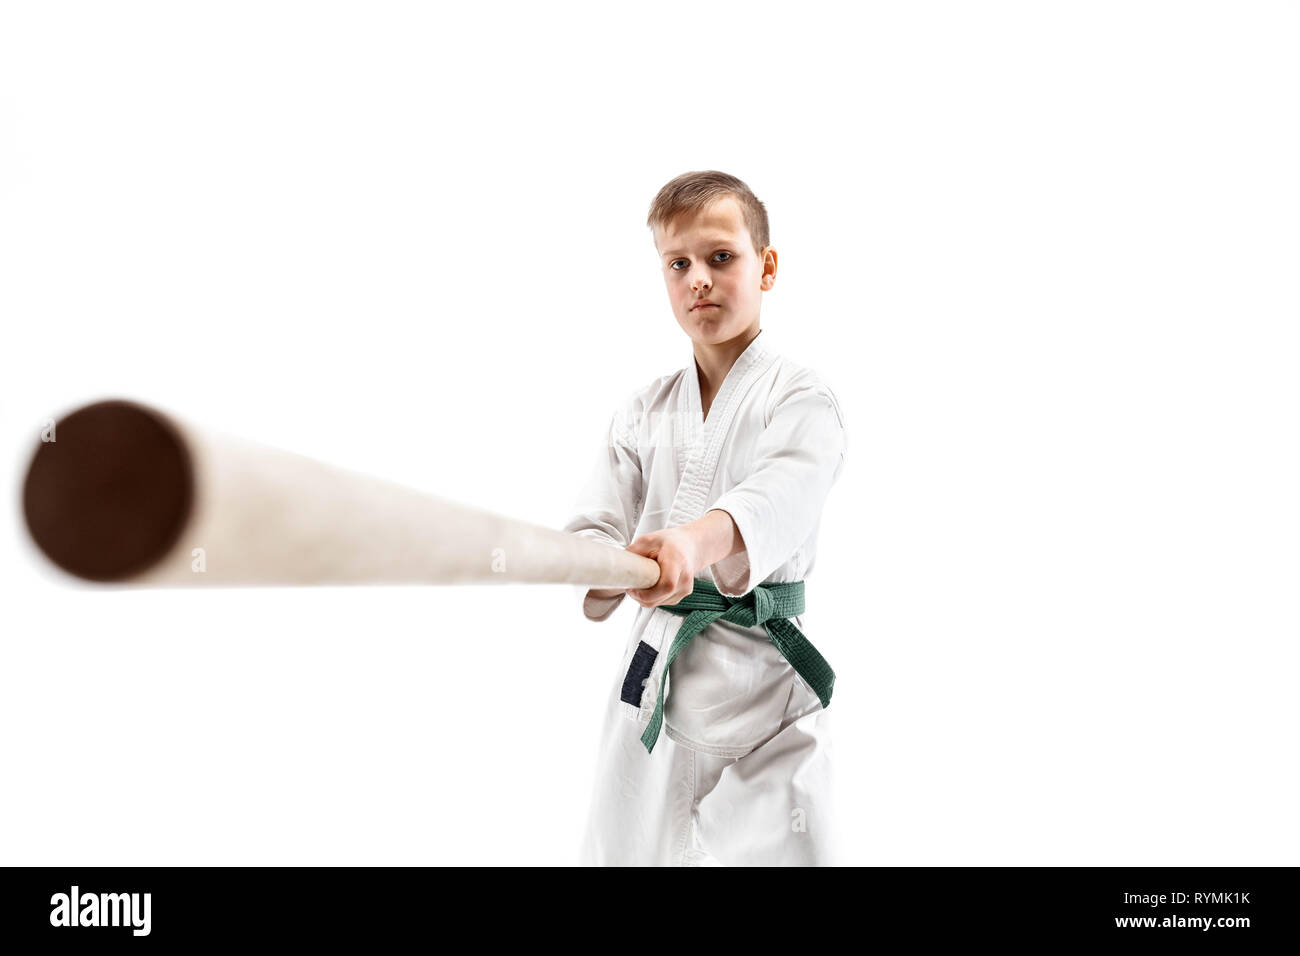 33aa93cf65 Teen boy fighting with wooden sword at Aikido training in martial arts  school. Healthy lifestyle